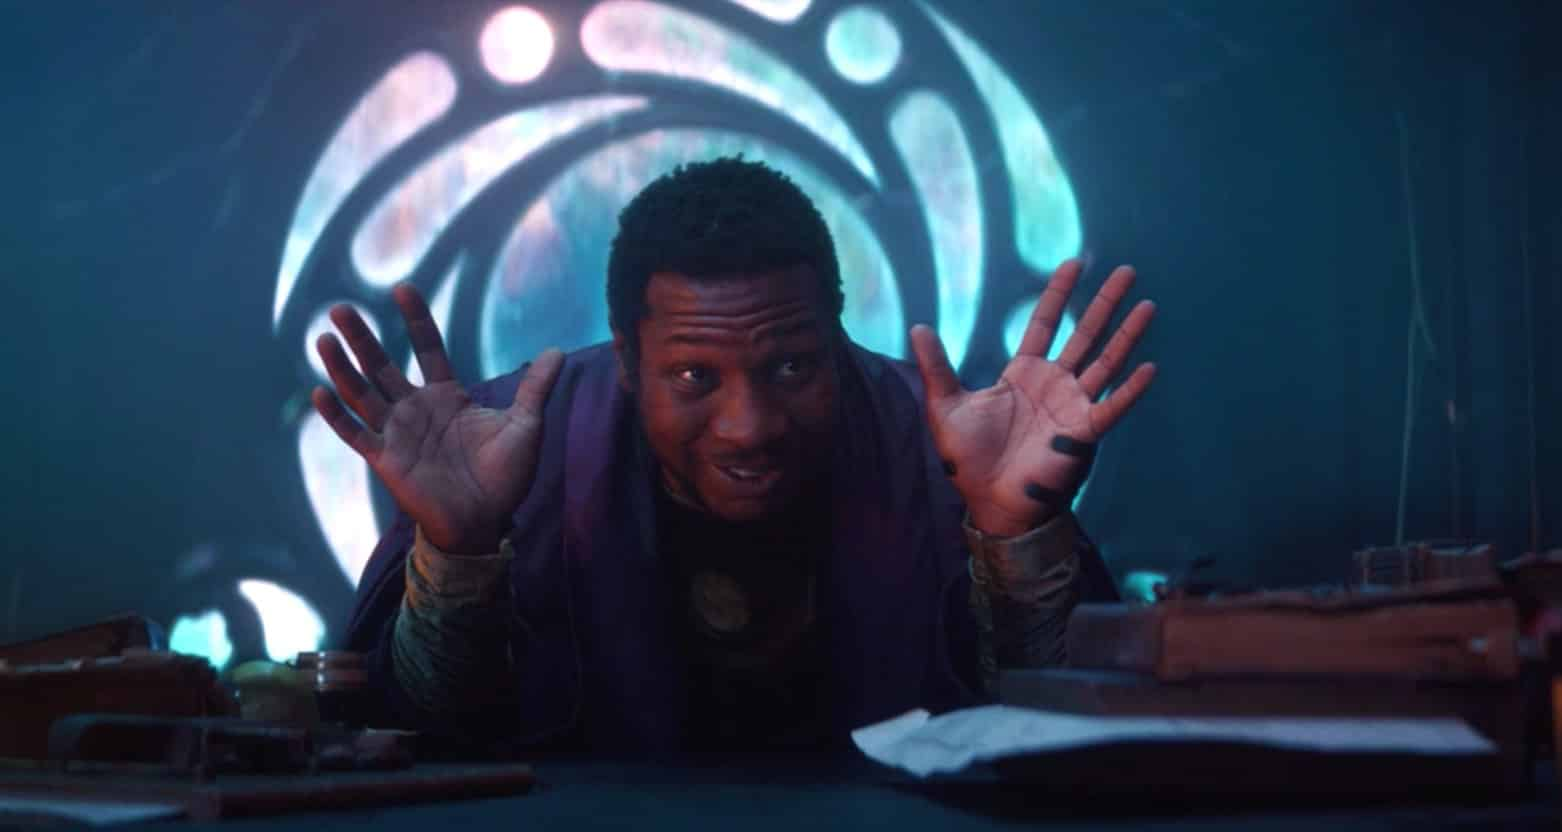 Jonathan Majors reveals how he landed the role of Kang